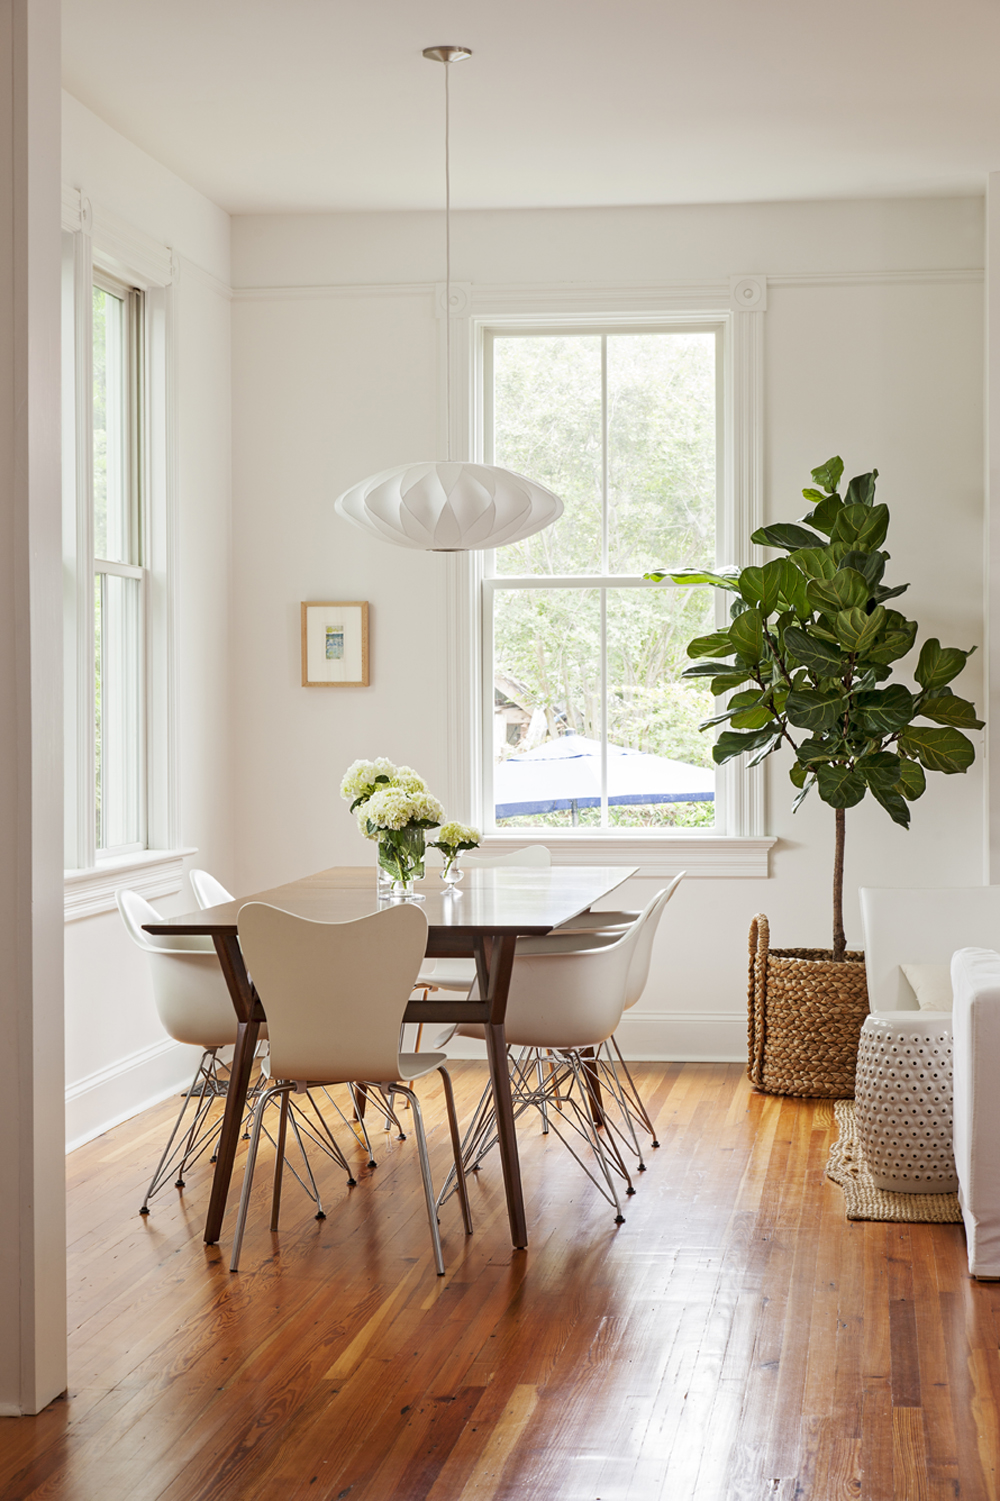 Modern History: In the addition, custom-milled trim and reclaimed floors reference the home's original architecture, while midcentury furnishings, such as Eames dining chairs and a George Nelson light fixture, set a contemporary tone.